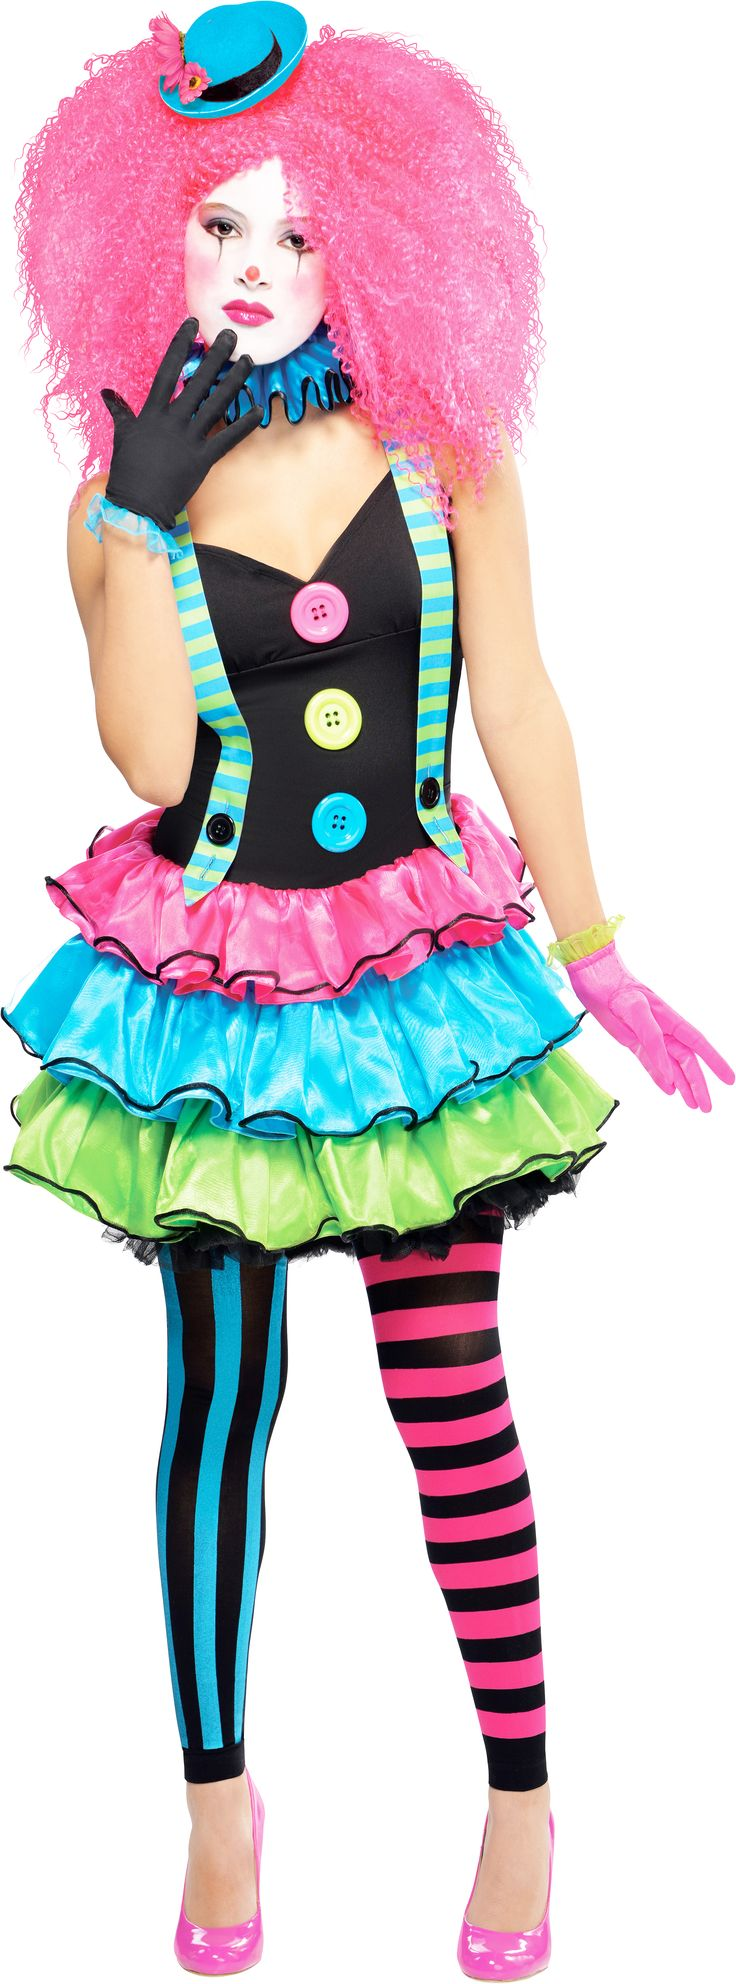 Kool Clown Costume | All Halloween | Mega Fancy Dress